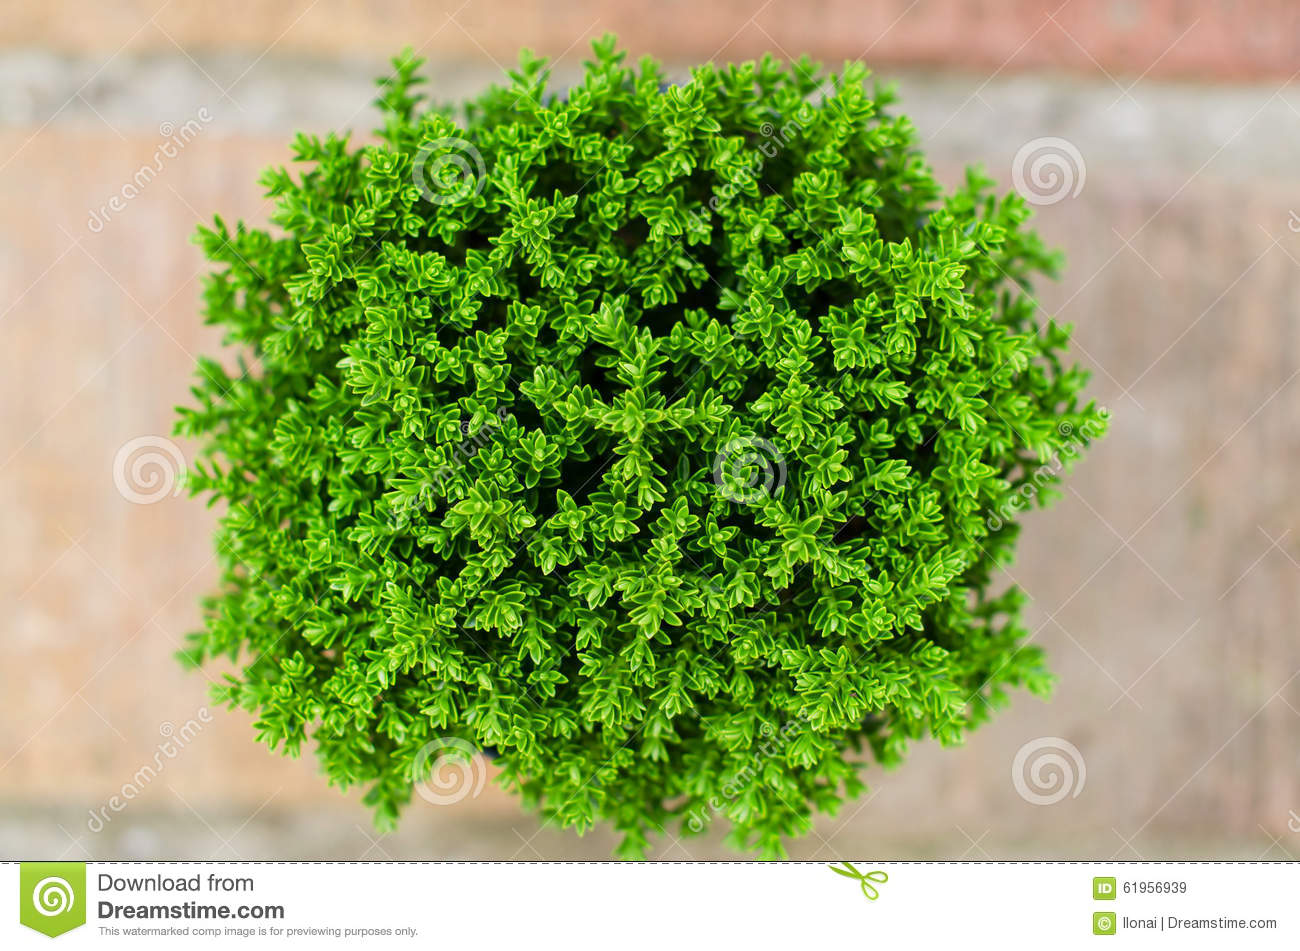 Potted plant stock photo image 61956939 for Green floor plant